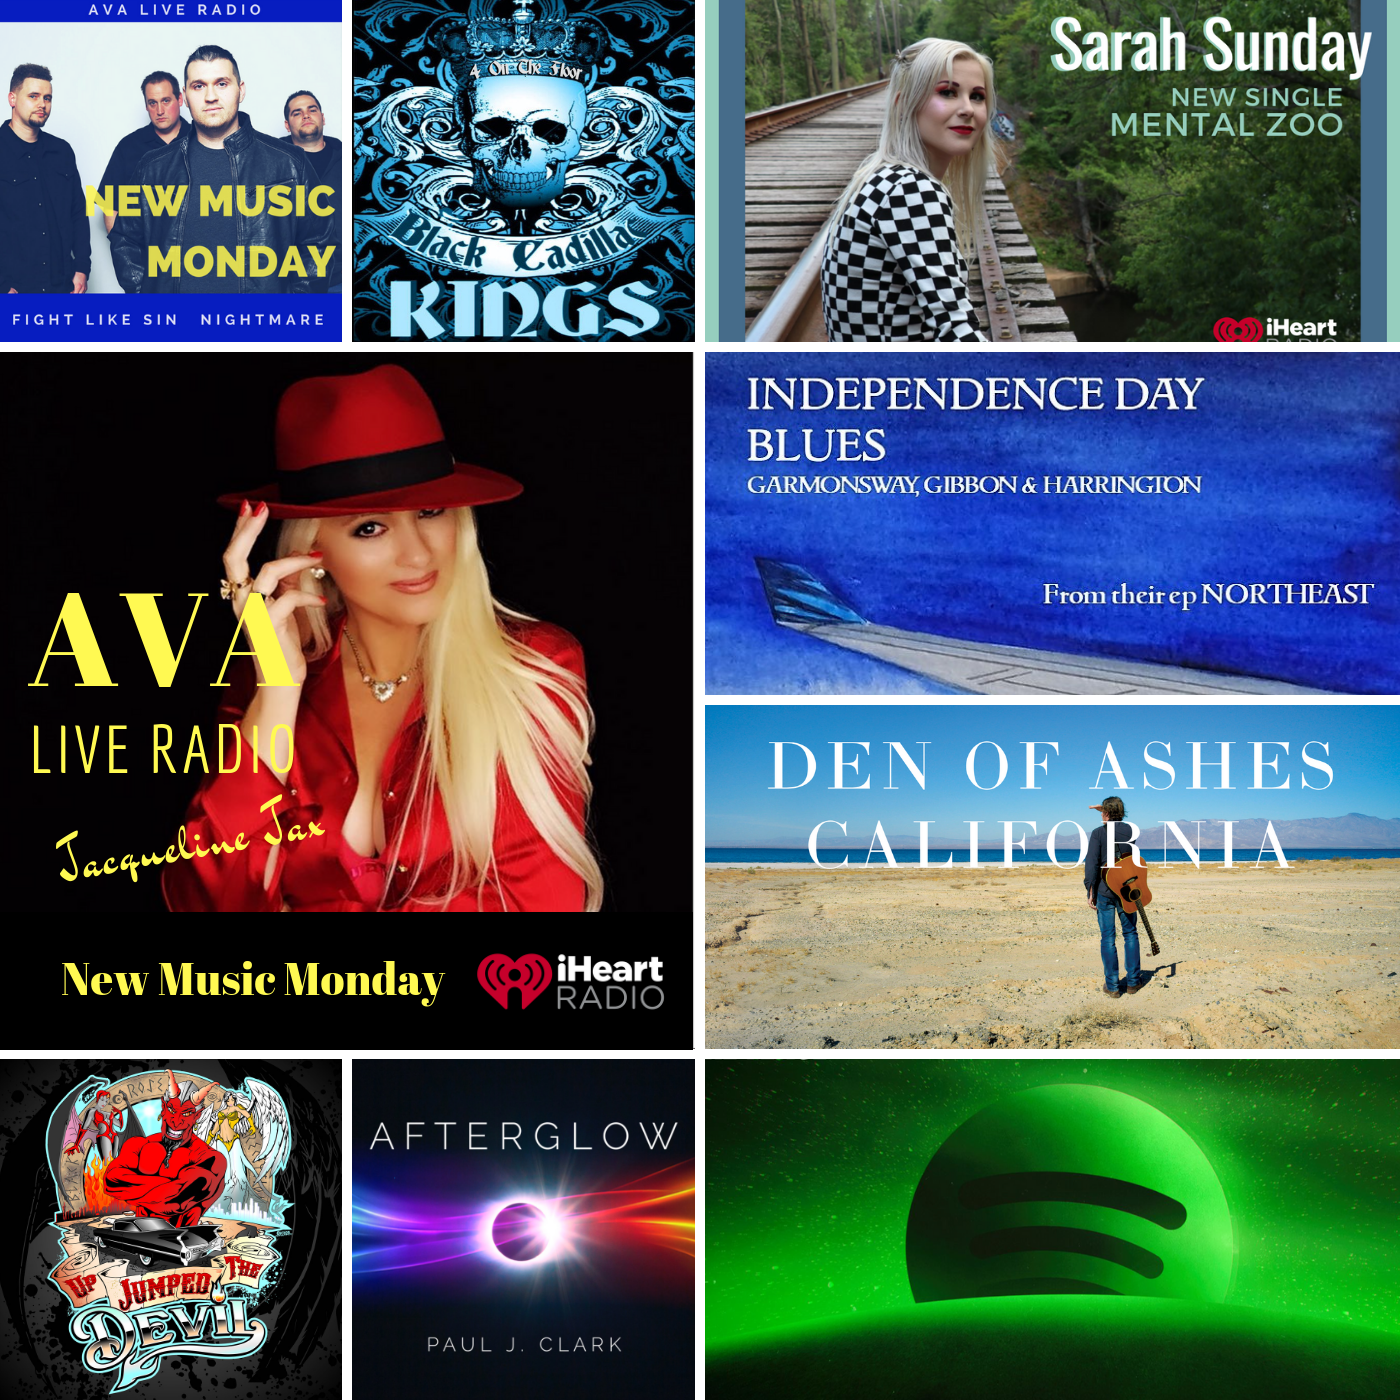 Avaliveradio New Music Monday.png